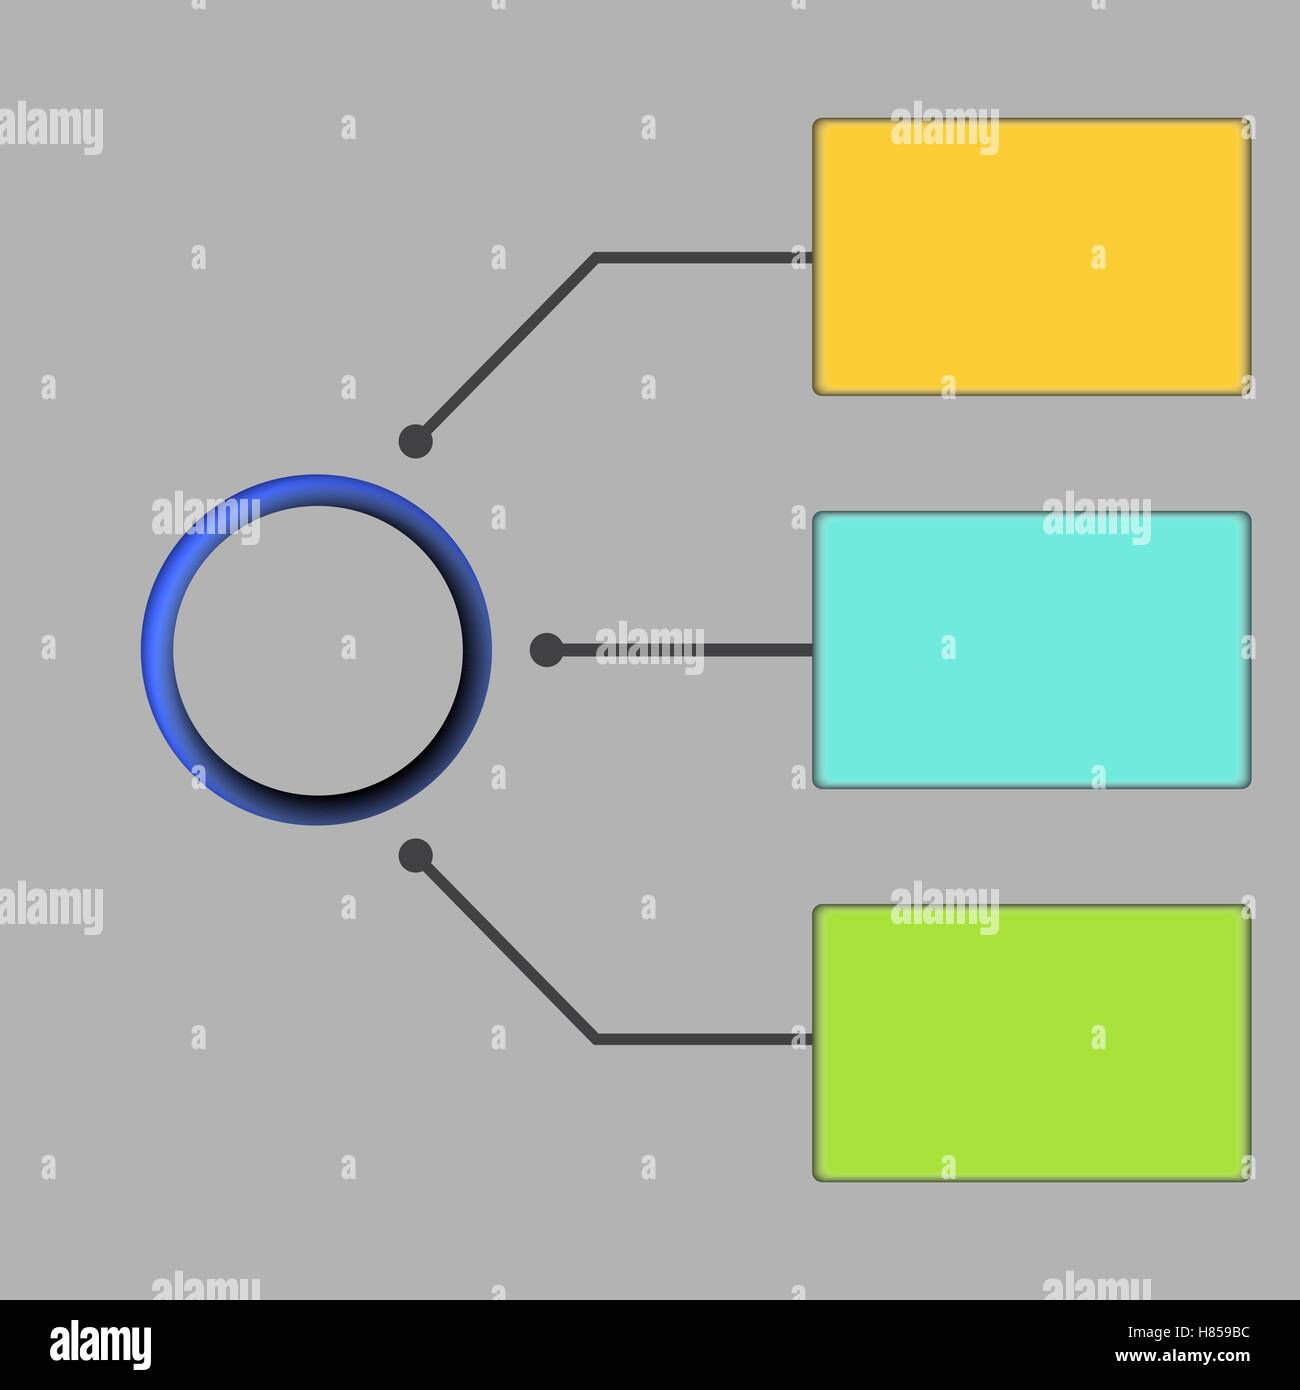 Template Infographic 3 Stock Photos & Template Infographic 3 Stock ...